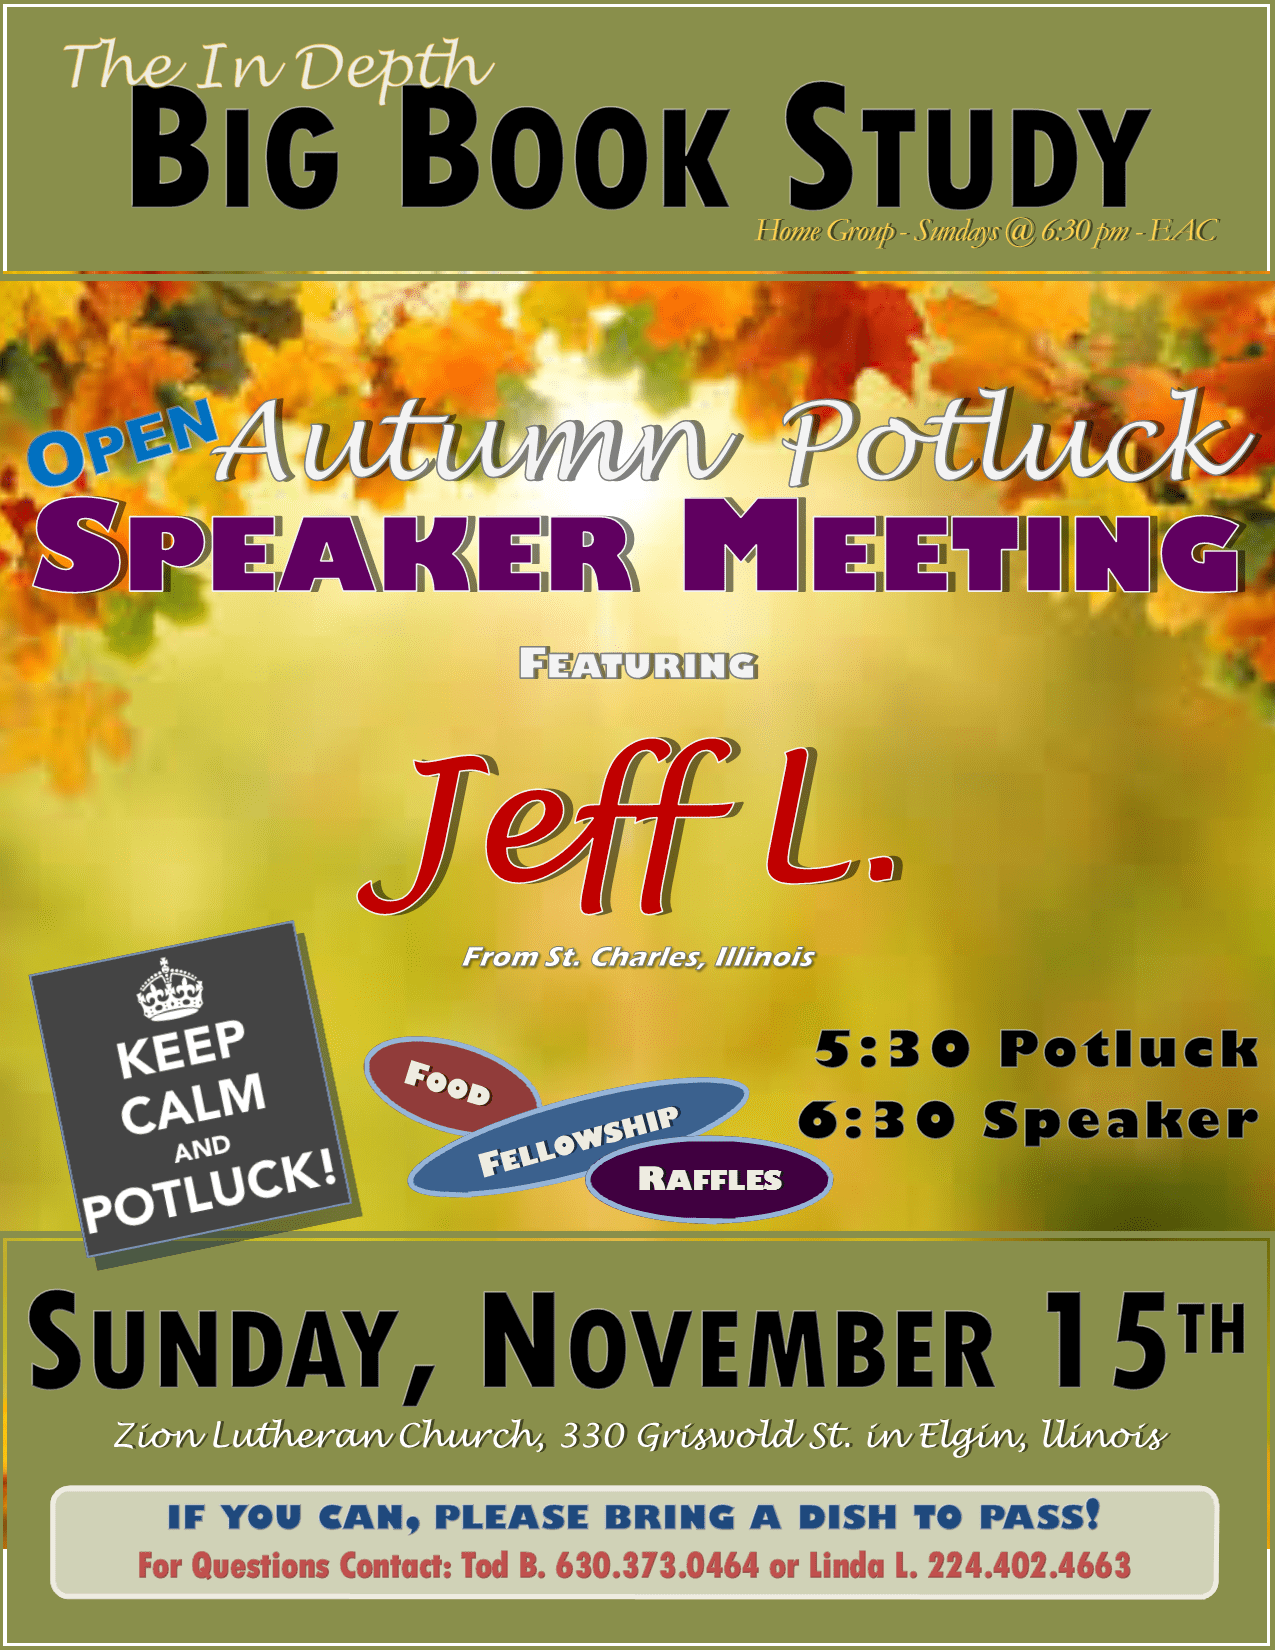 Autumn Open Speaker Potluck – In-Depth Big Book Study Group 1